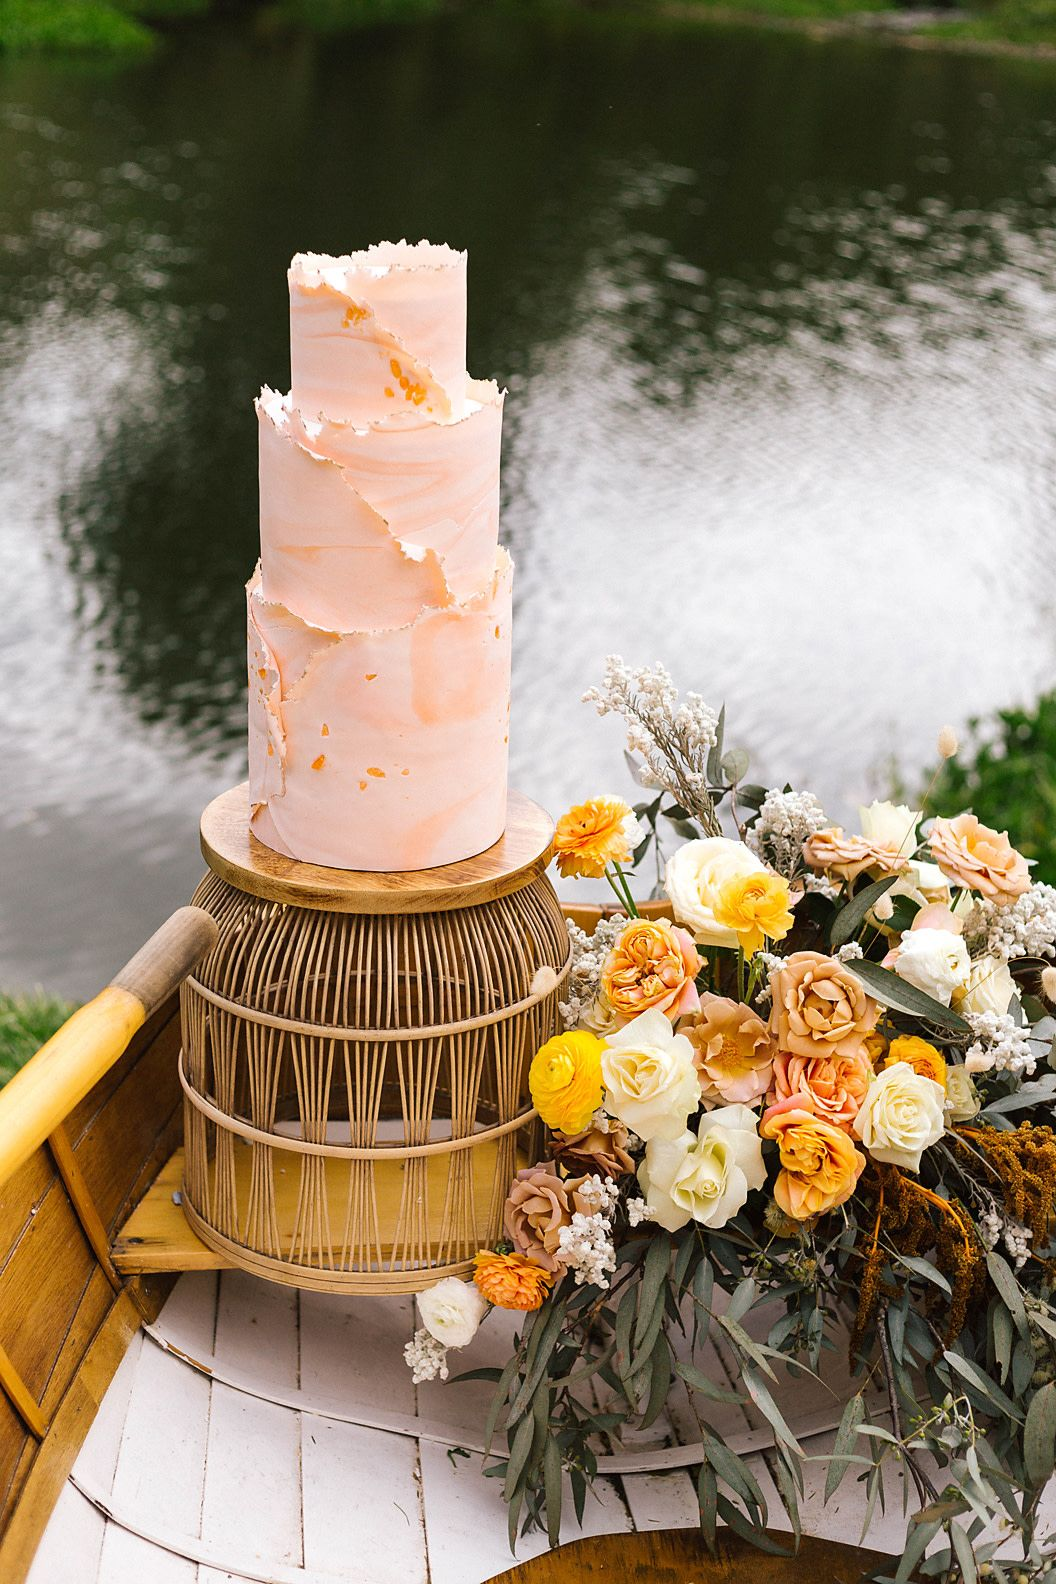 Three-tiered boho wedding cake with marbled texture and deckle edge in peach and coral hues   Romantic Riverside Boho Wedding Inspiration   Photography: Poppy and Sage